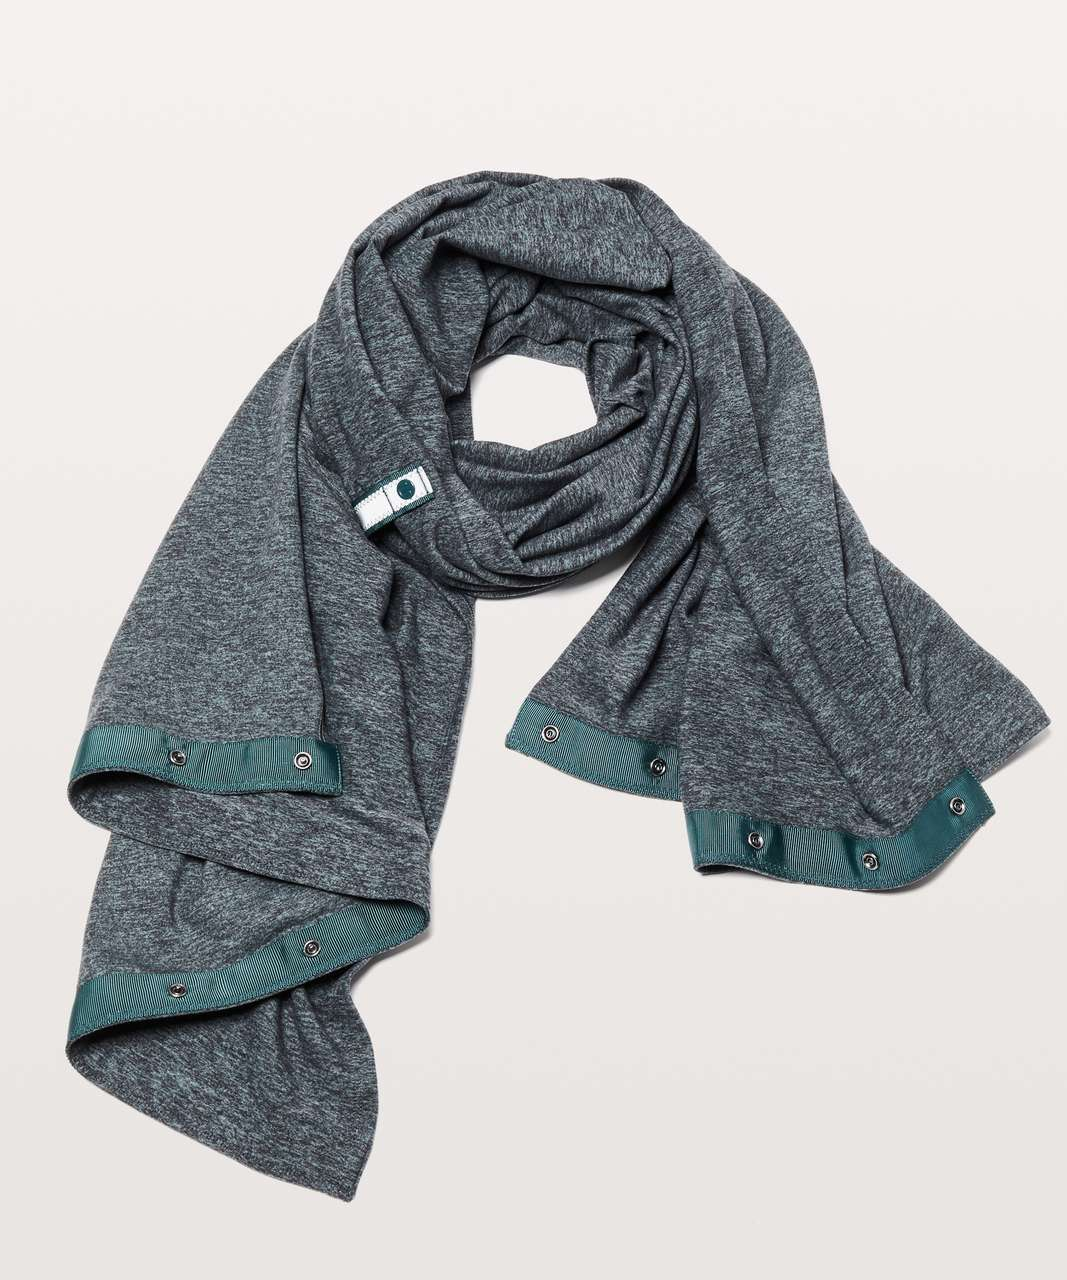 Lululemon Vinyasa Scarf - Heathered Submarine